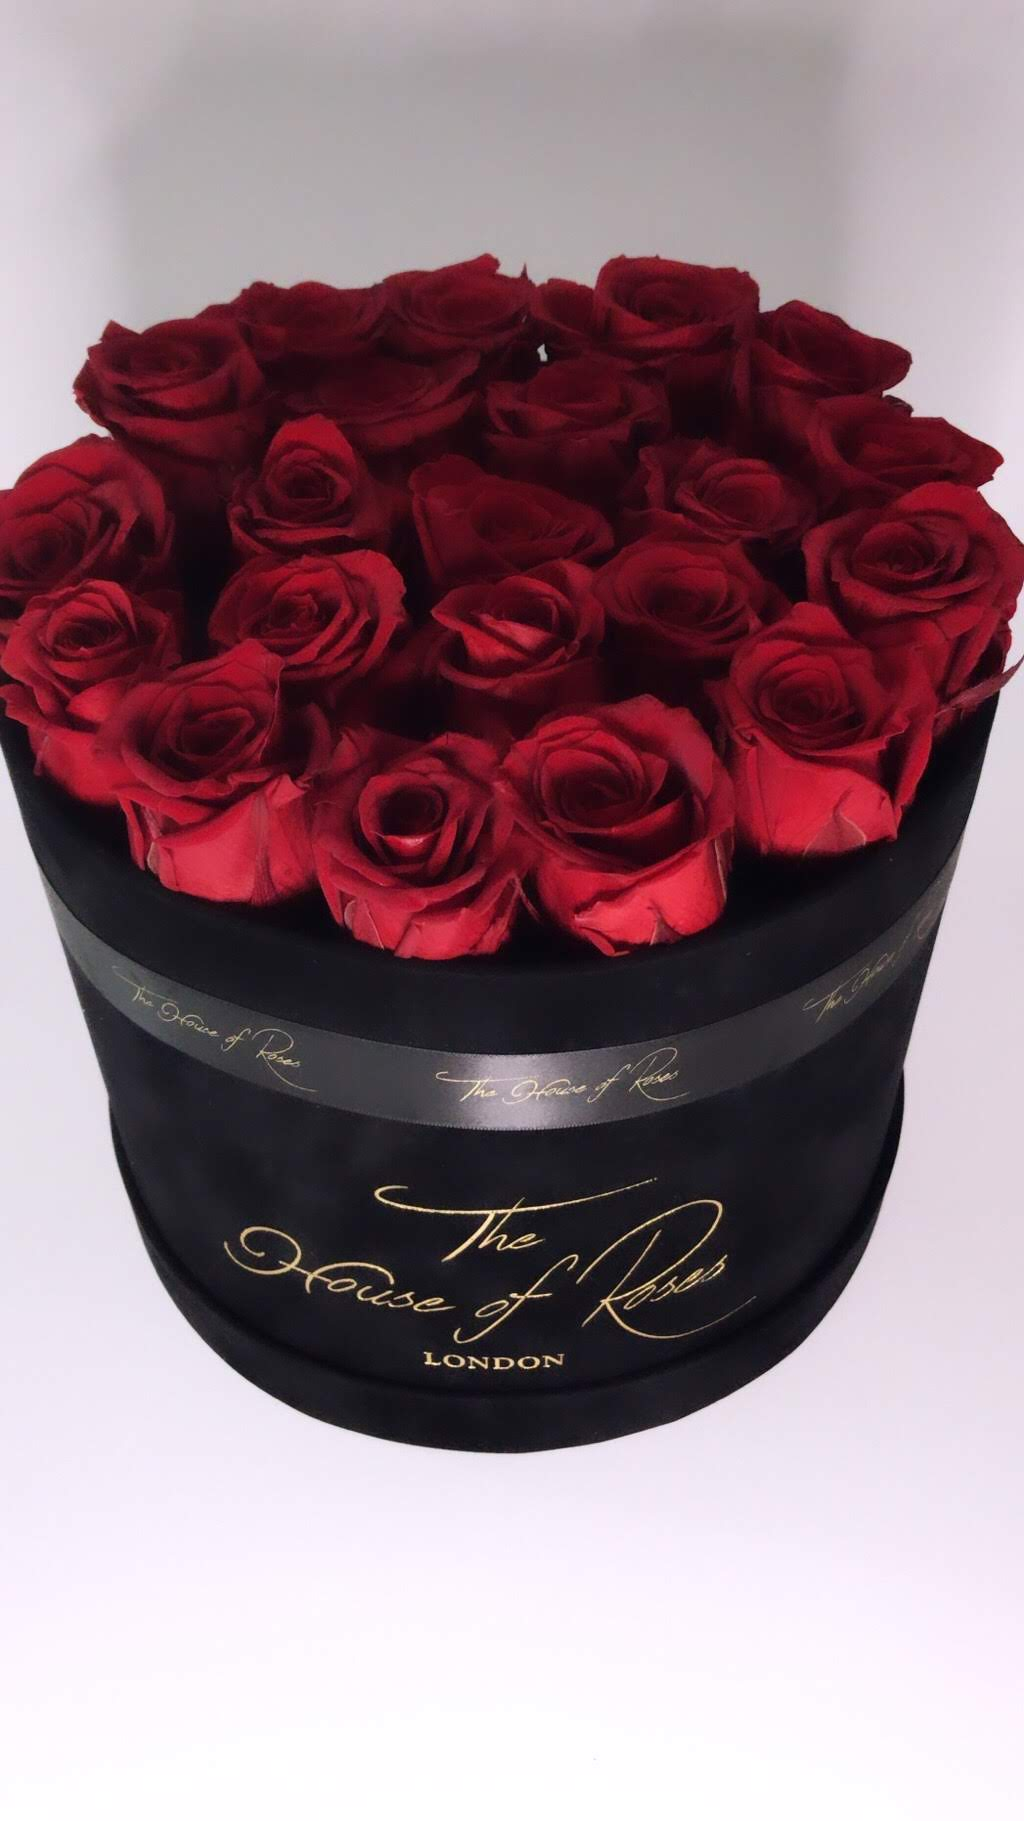 Eternal Rose Hatbox - Suede Black - The House of Roses London